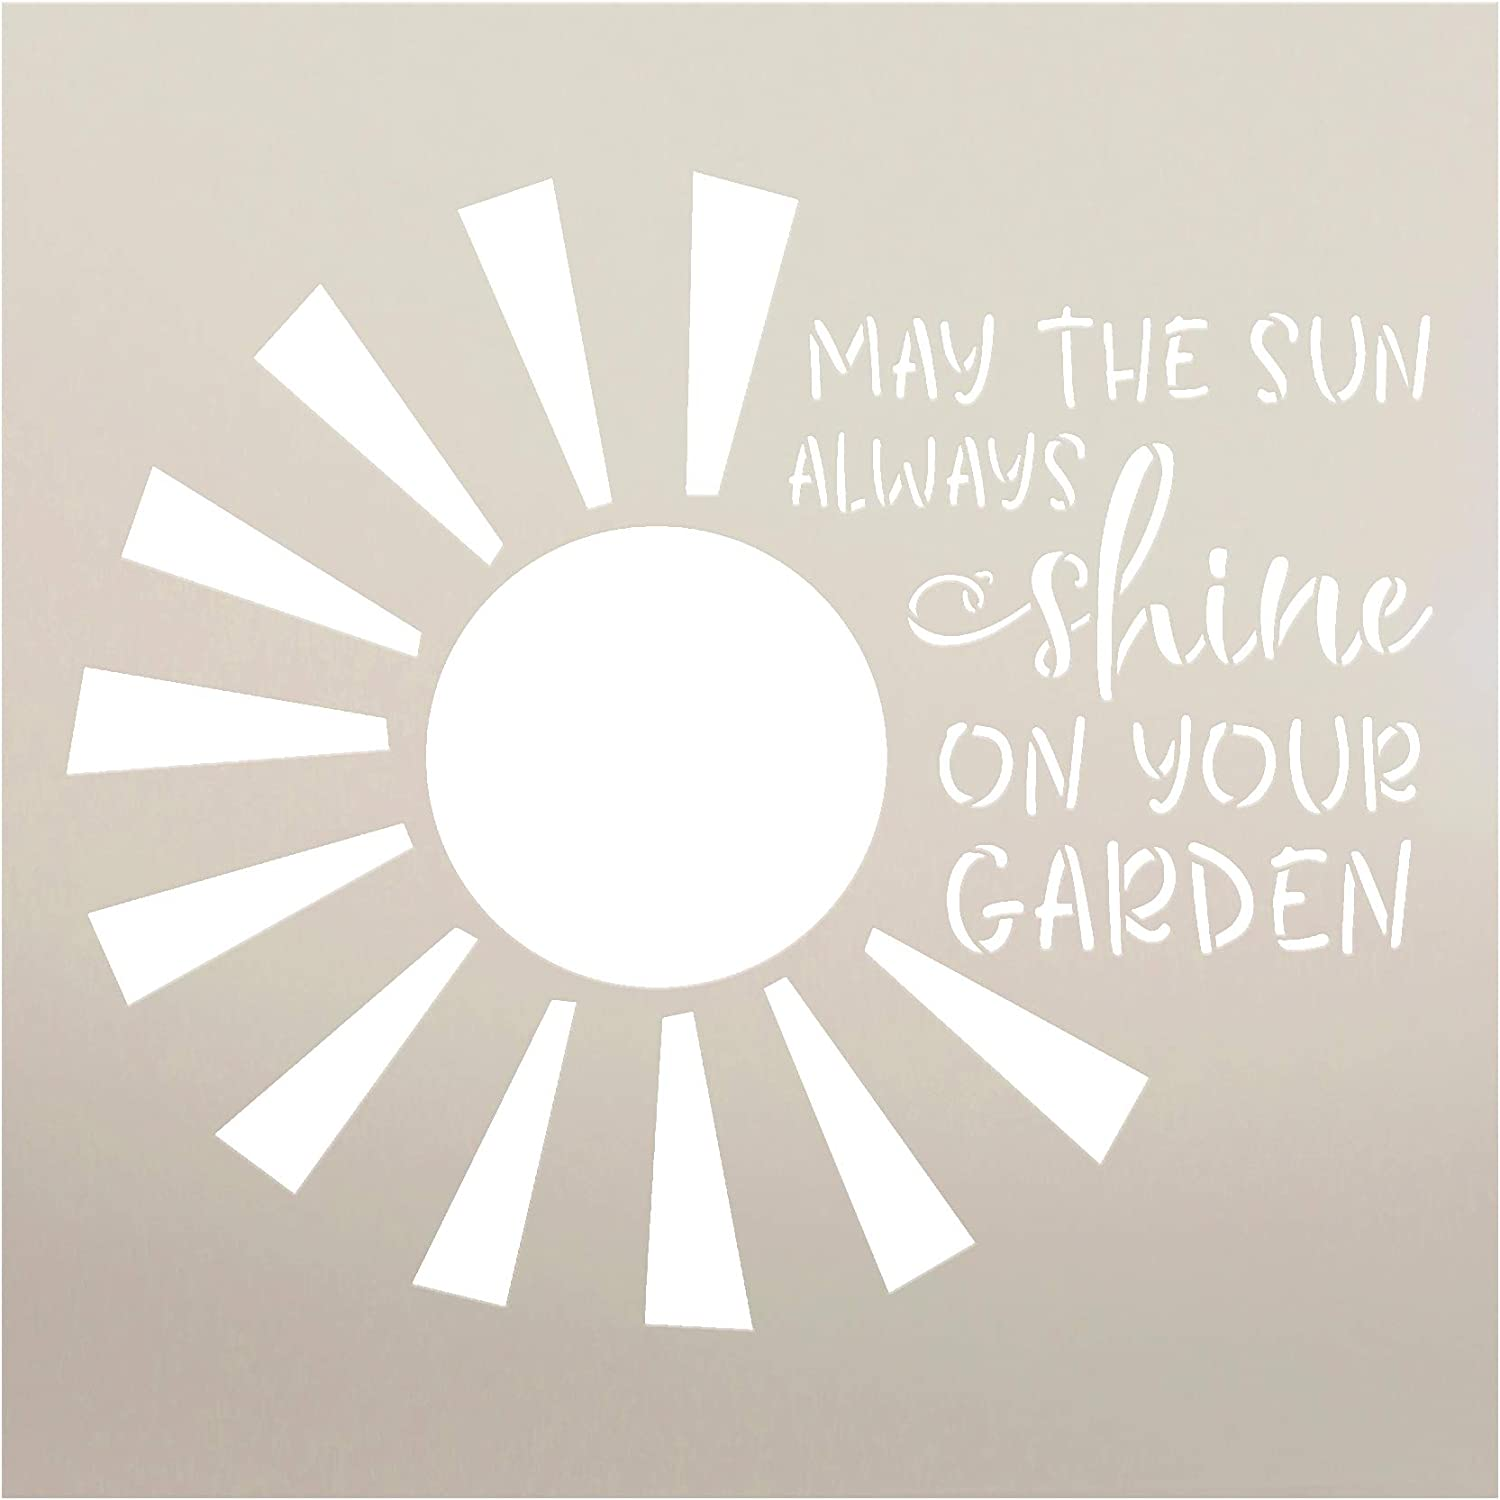 May Sun Always Shine on Your Garden Stencil by StudioR12 | Reusable Mylar Template | Paint Wood Sign | Craft Plant Lover Gift - Family - Friend | DIY Porch Home Decor Select Size (12 x 12 inches)